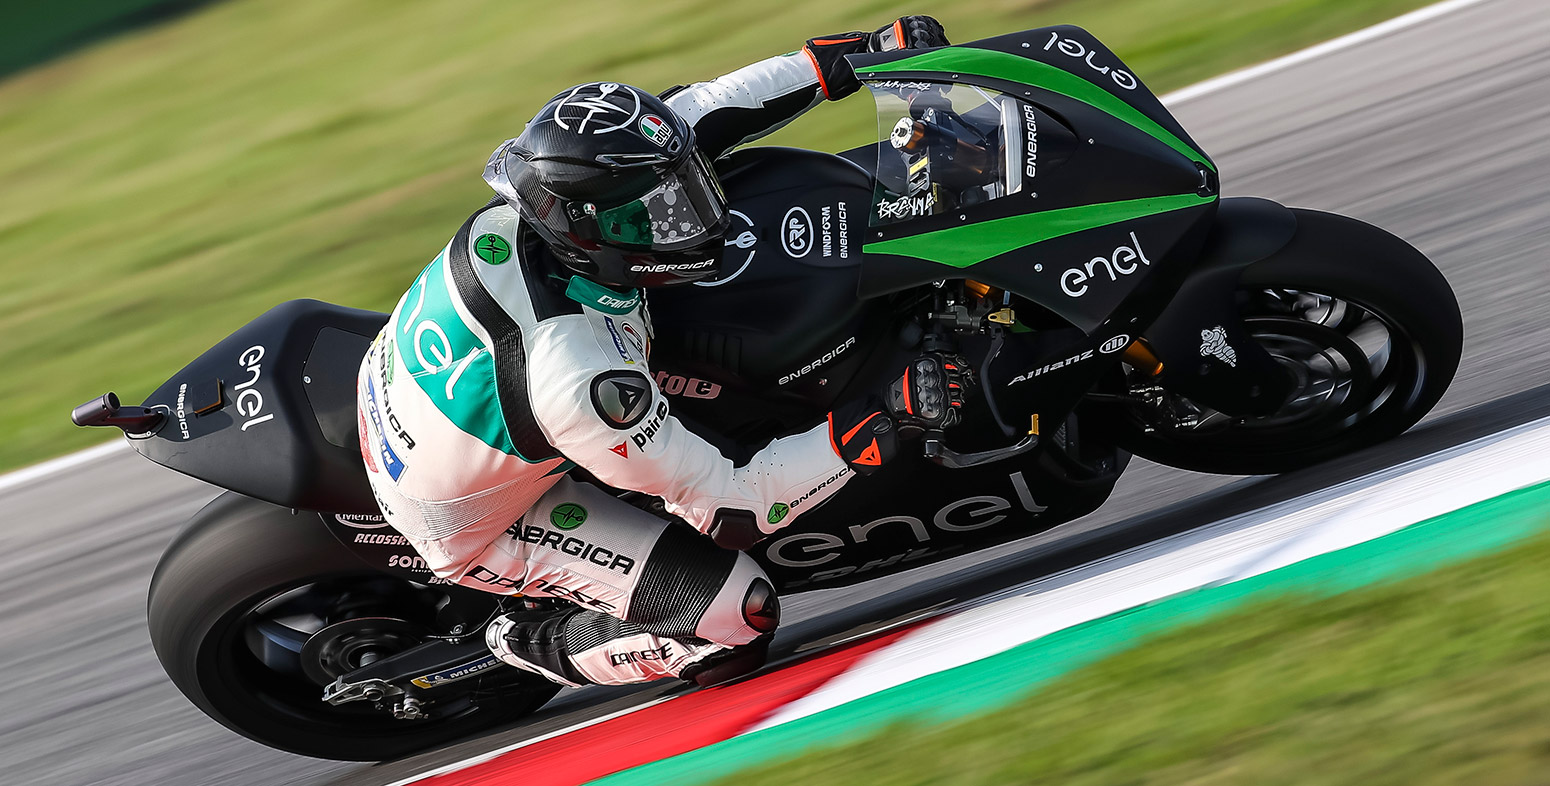 The Energica Corsa electric bike. Image via Energica.